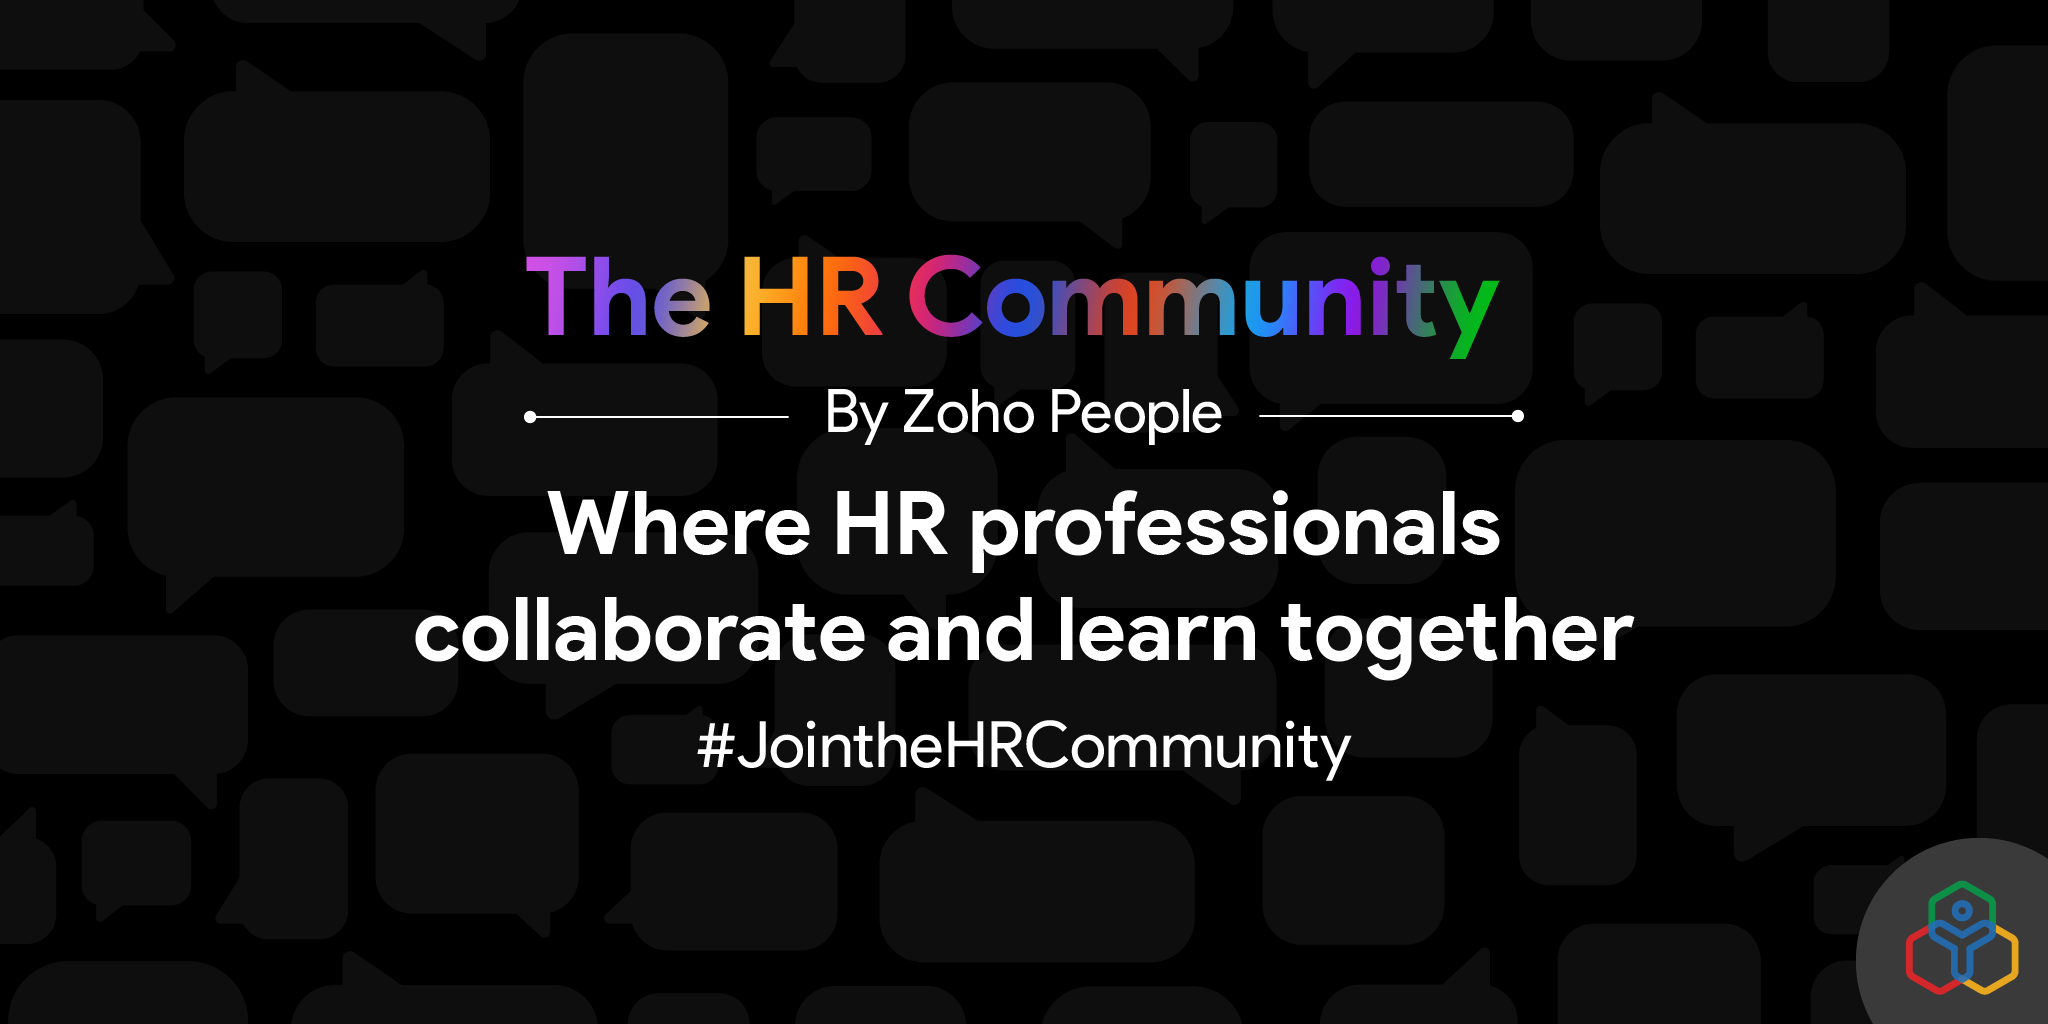 Introducing the HR Community, by Zoho People